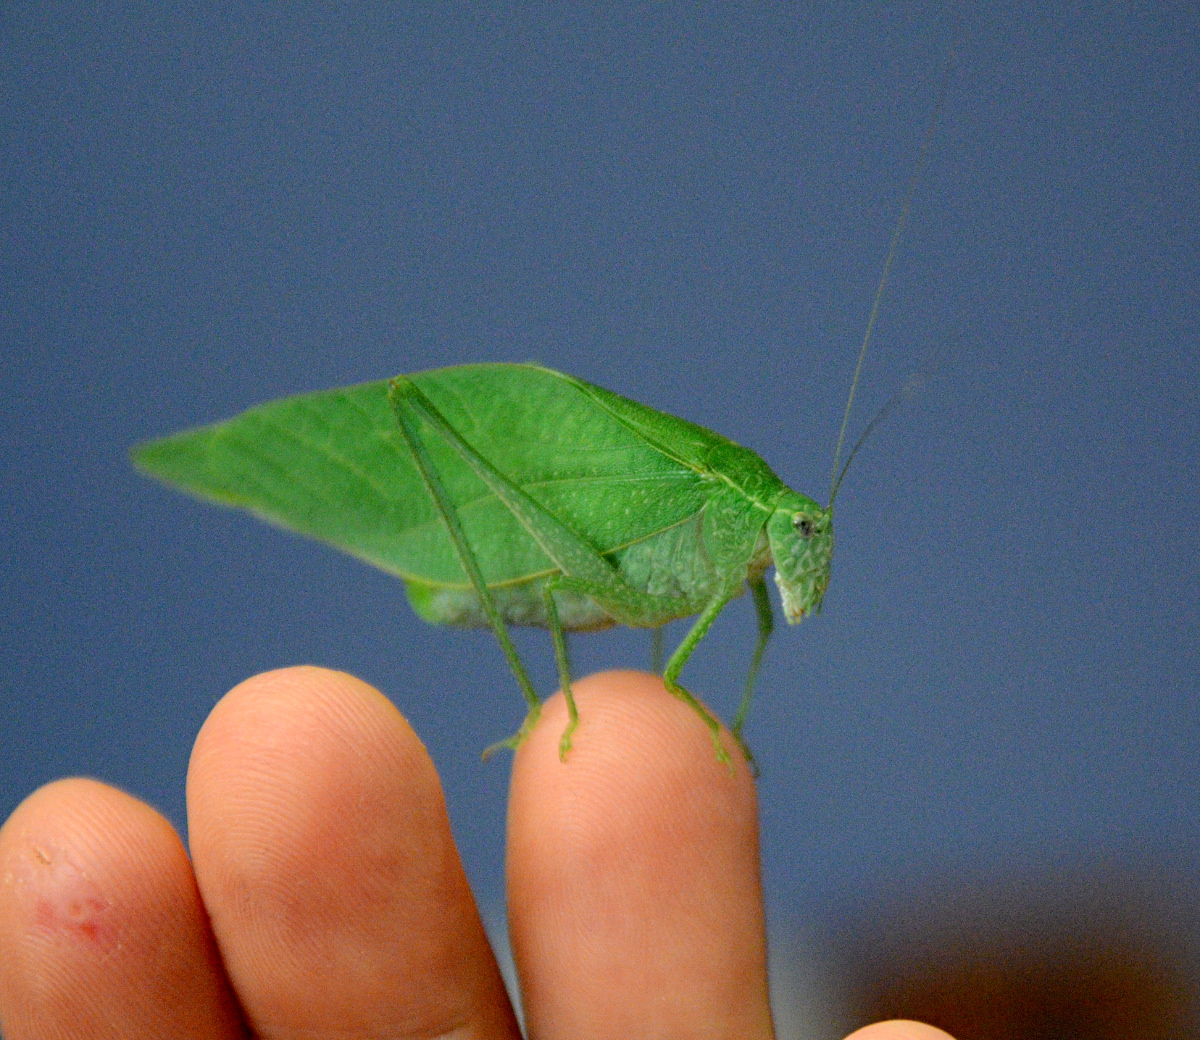 Unknown Katydid on Monty's fingertips